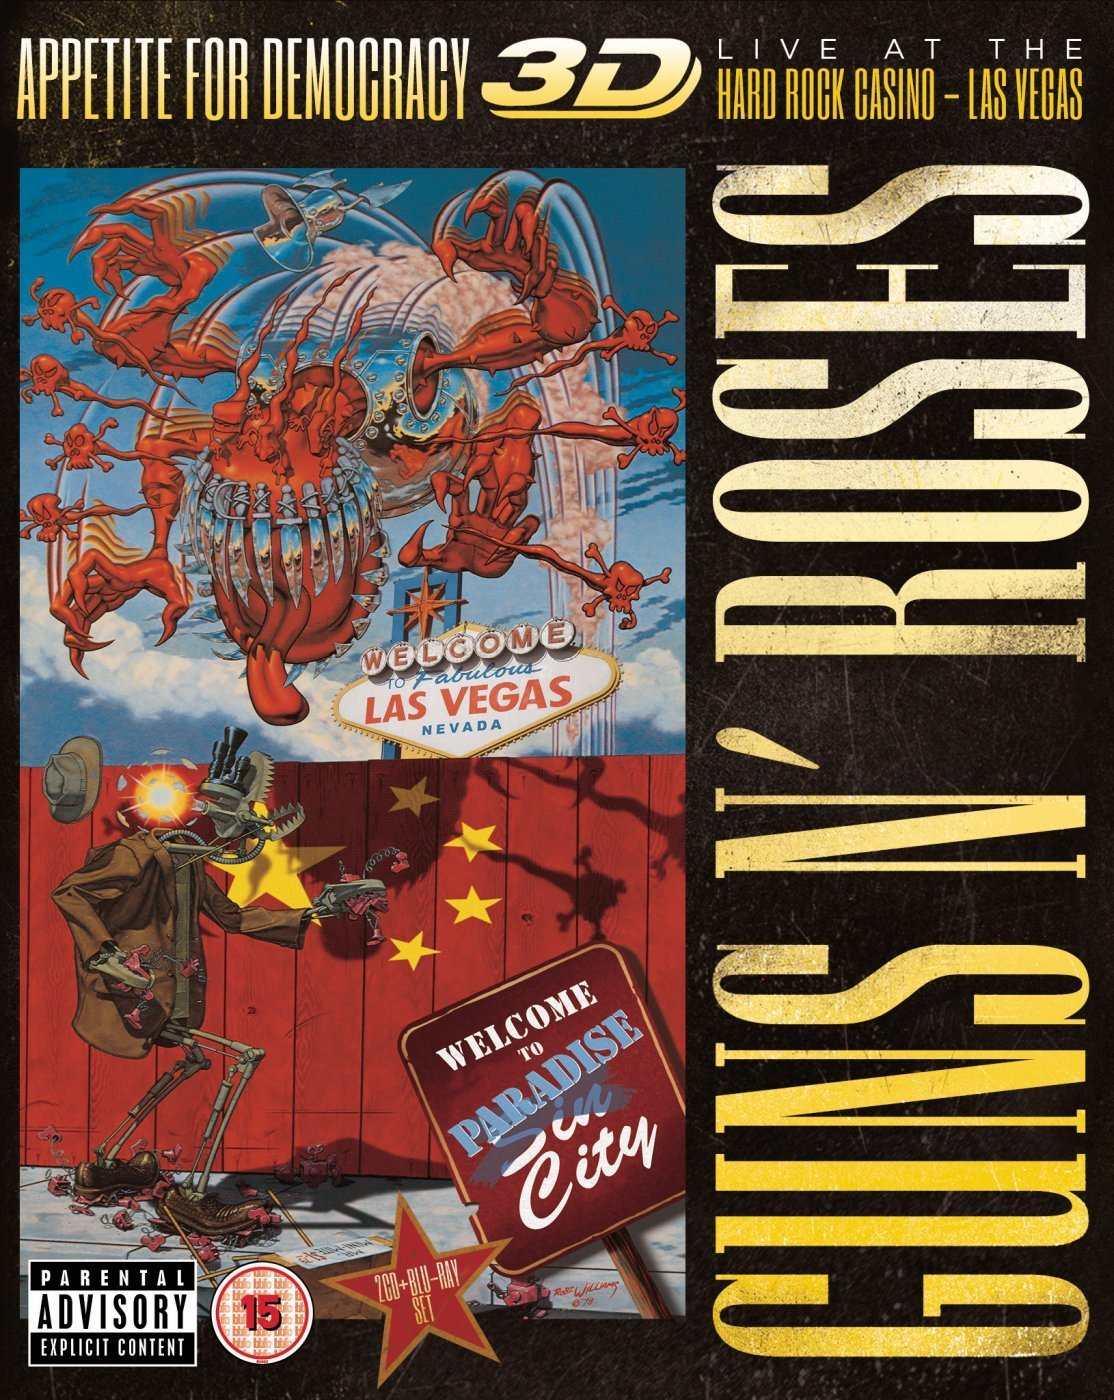 Appetite for democracy 3D